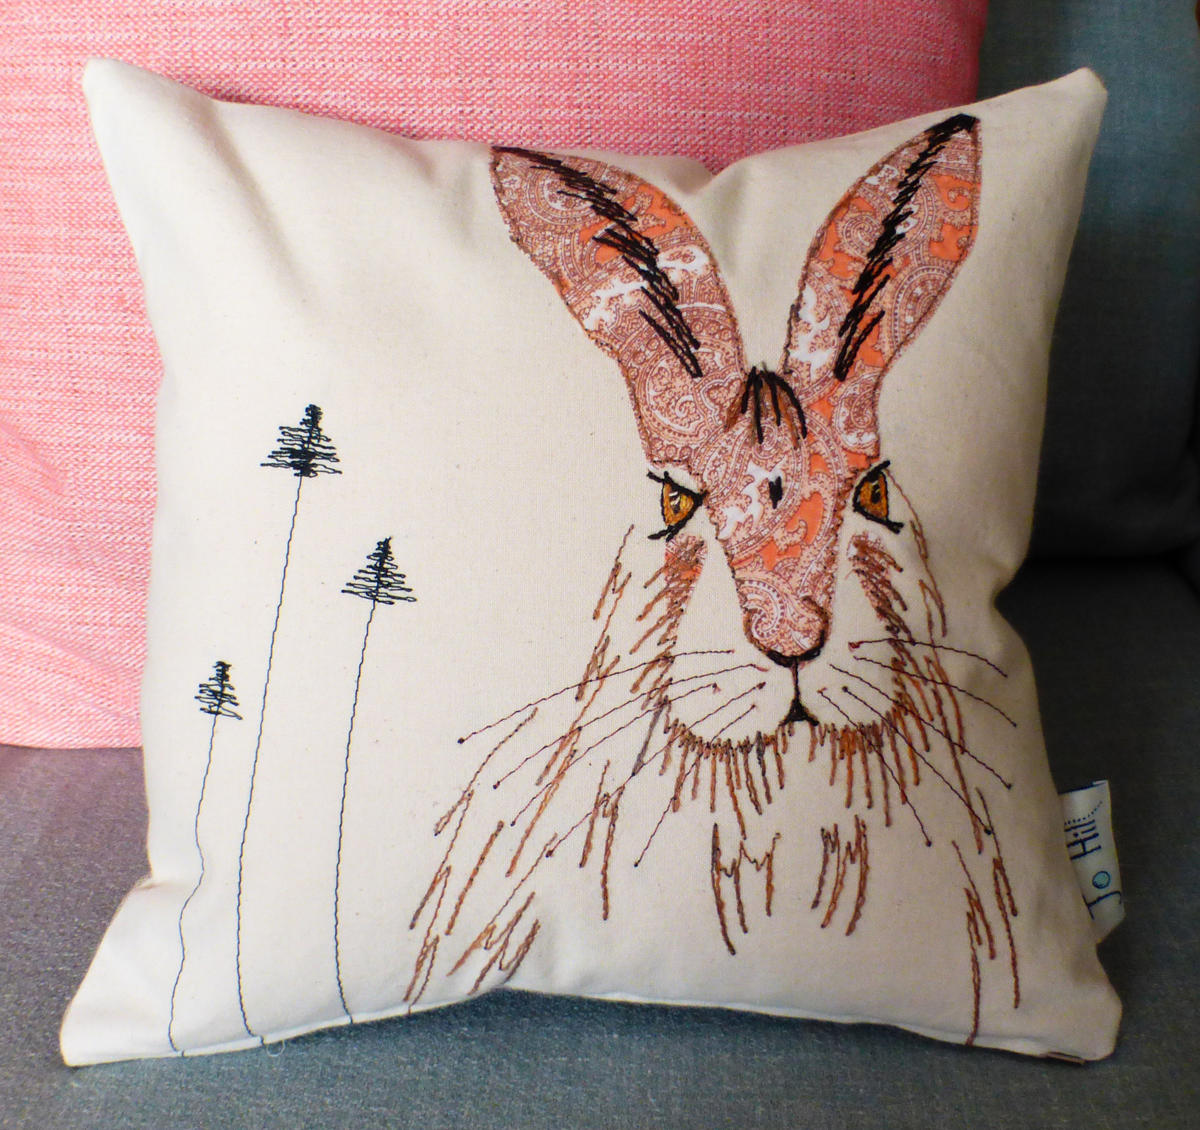 Hare cushion by Jo Hill